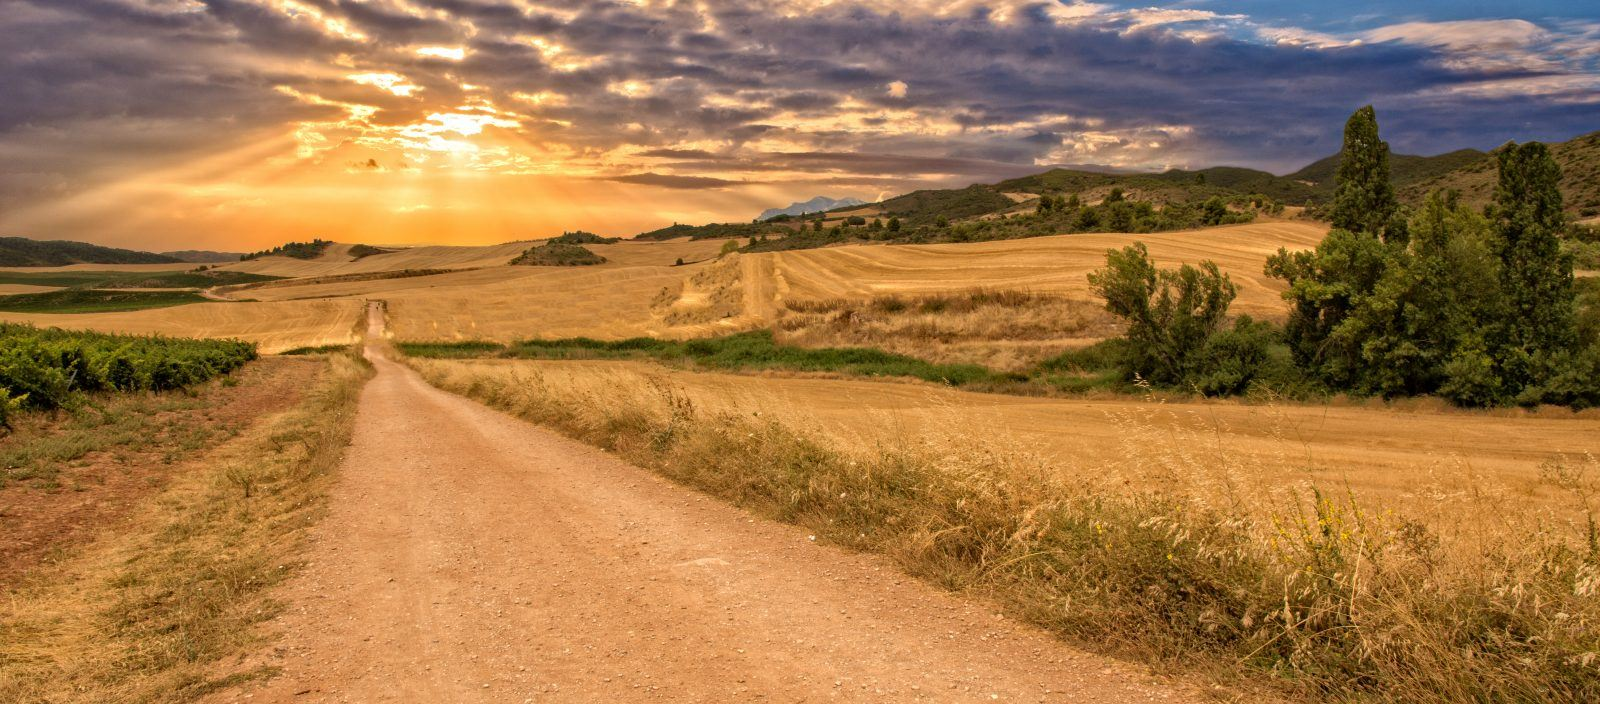 Spain: Walking the Camino de Santiago